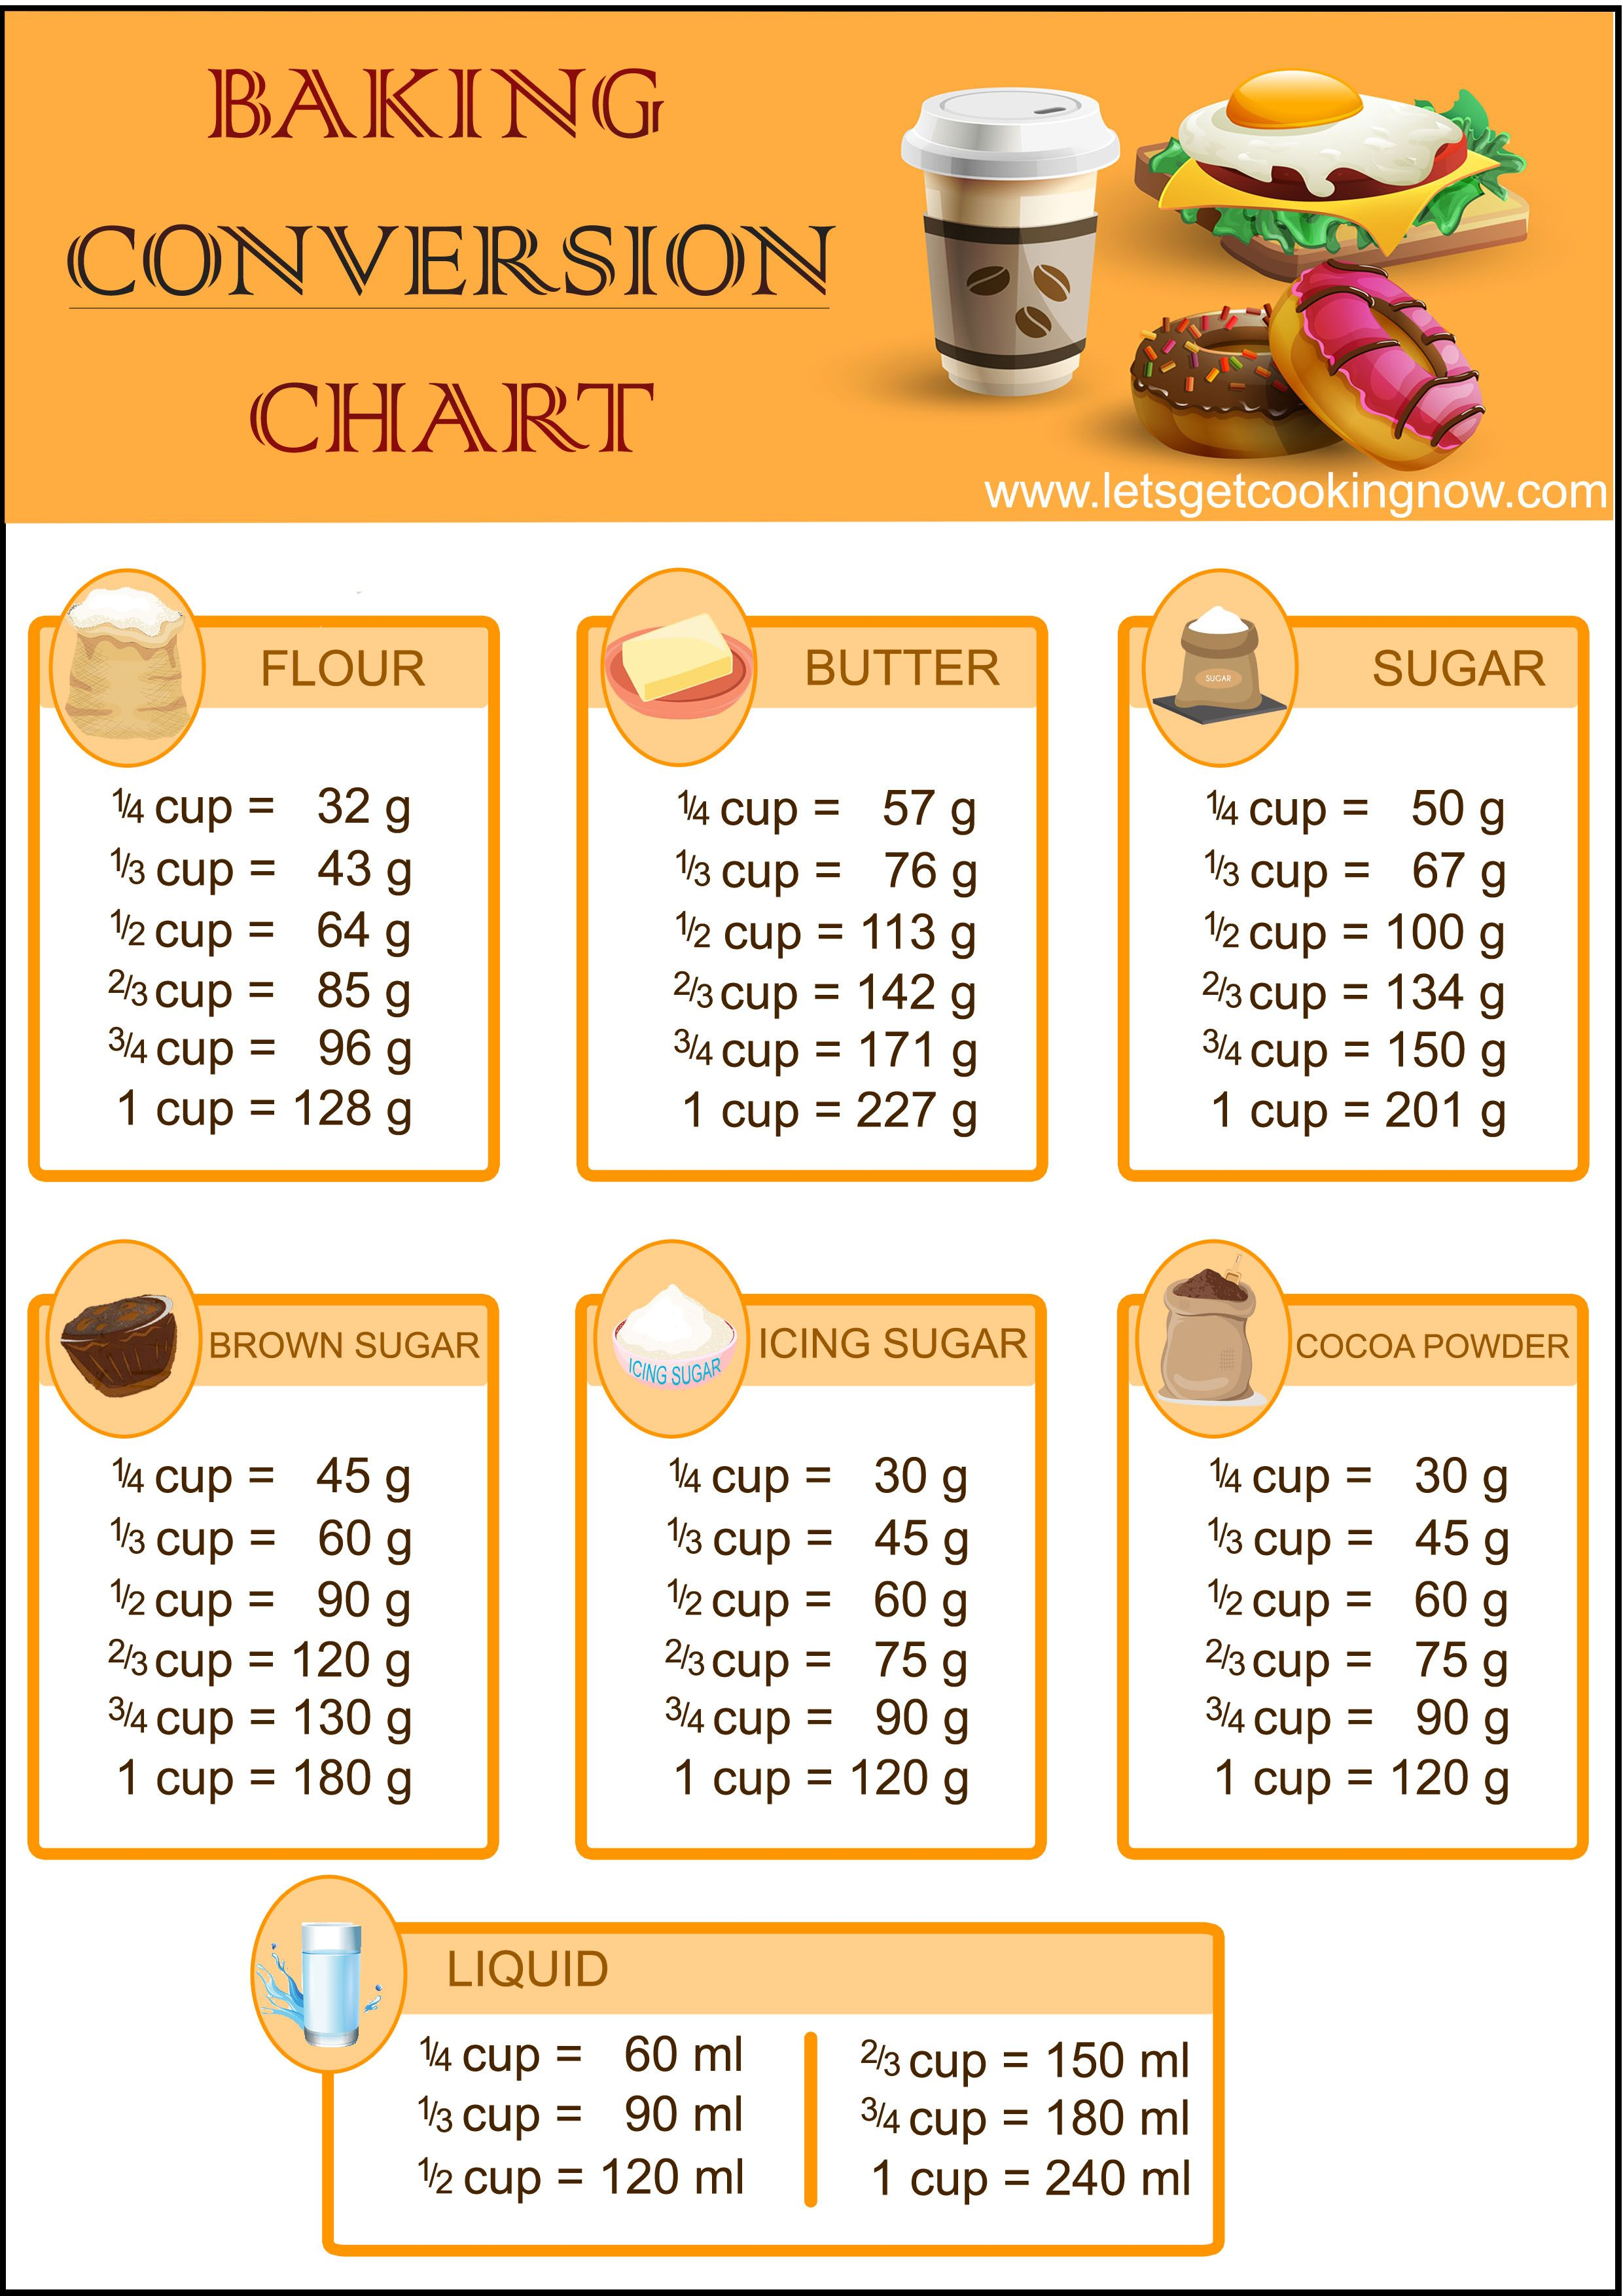 Convert Your Baking Measurements From Cup To Grams Easily With This Chart